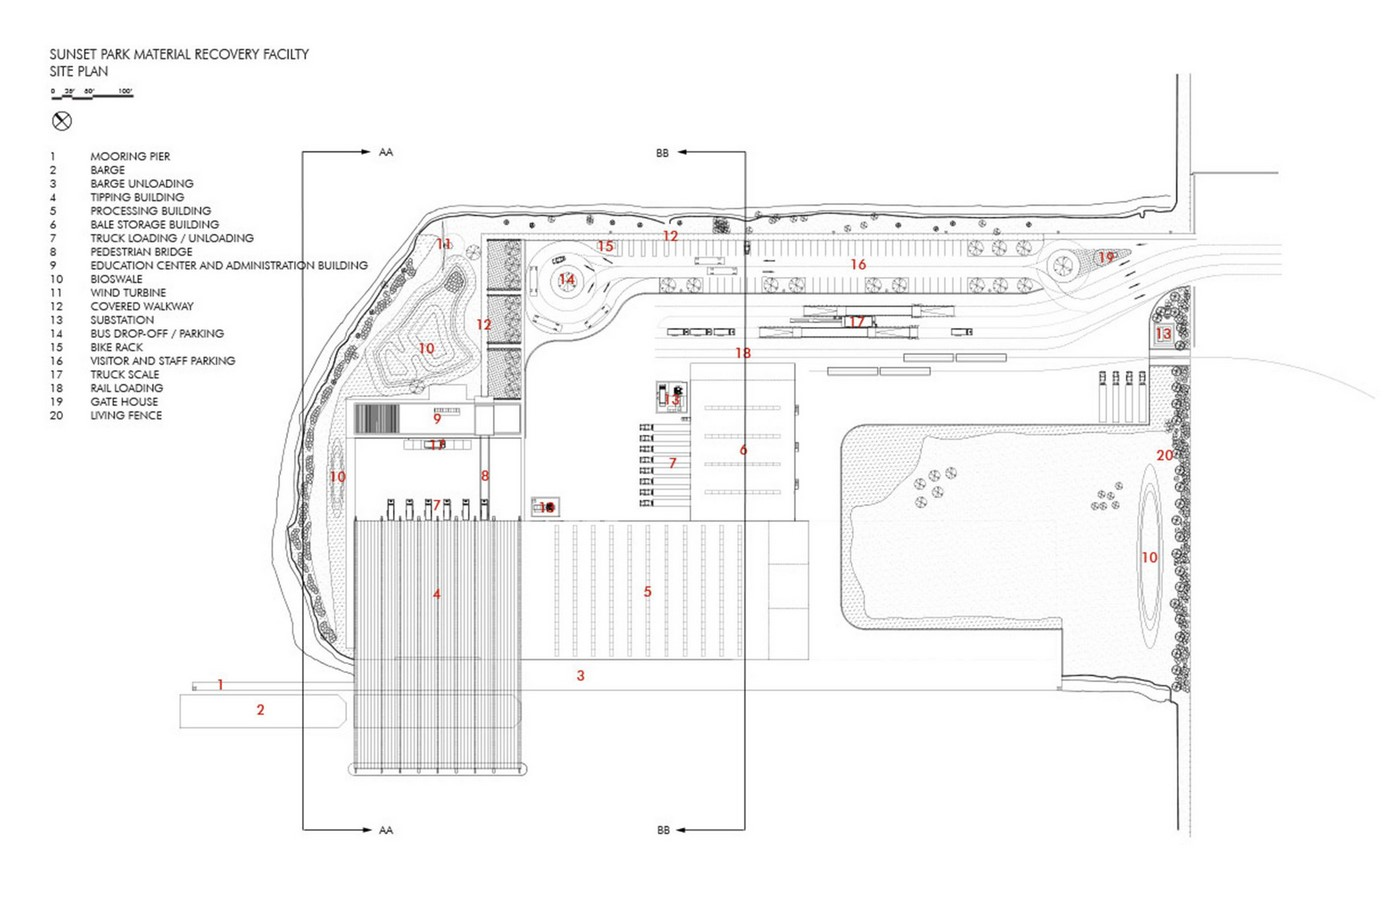 Sunset Park Material Recovery Facility / Selldorf Architects- Sheet1